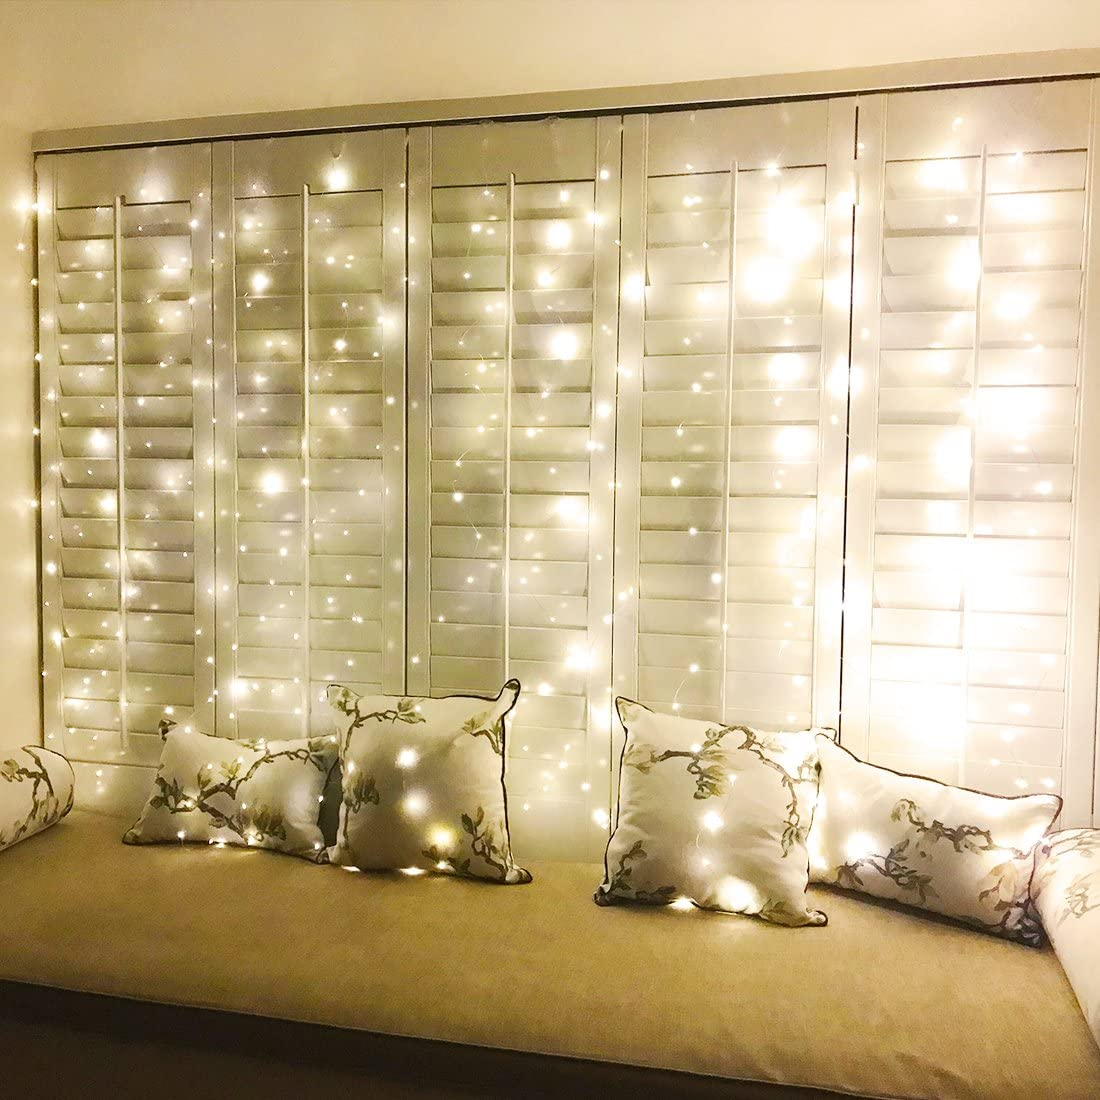 ZSCOO 300 LED Window Curtain Fairy String Light Silver Wire for Wedding Party Home Garden Bedroom Outdoor Indoor Wall Decorations Light with Remote Warm White